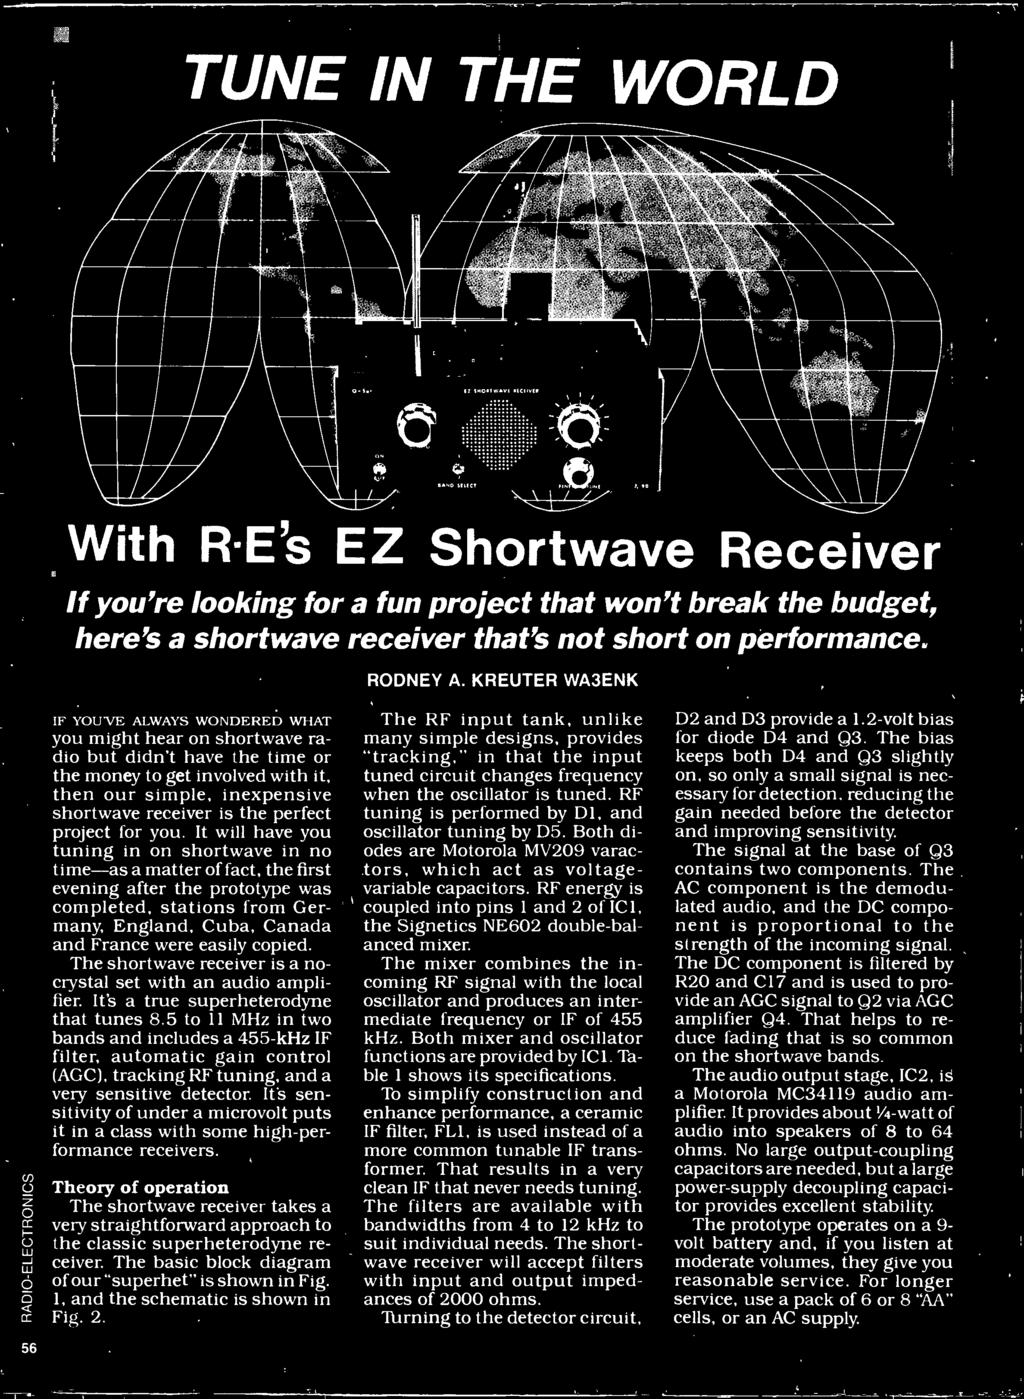 The shortwave receiver is a no - crystal set with an audio amplifier. It's a true superheterodyne that tunes 8.